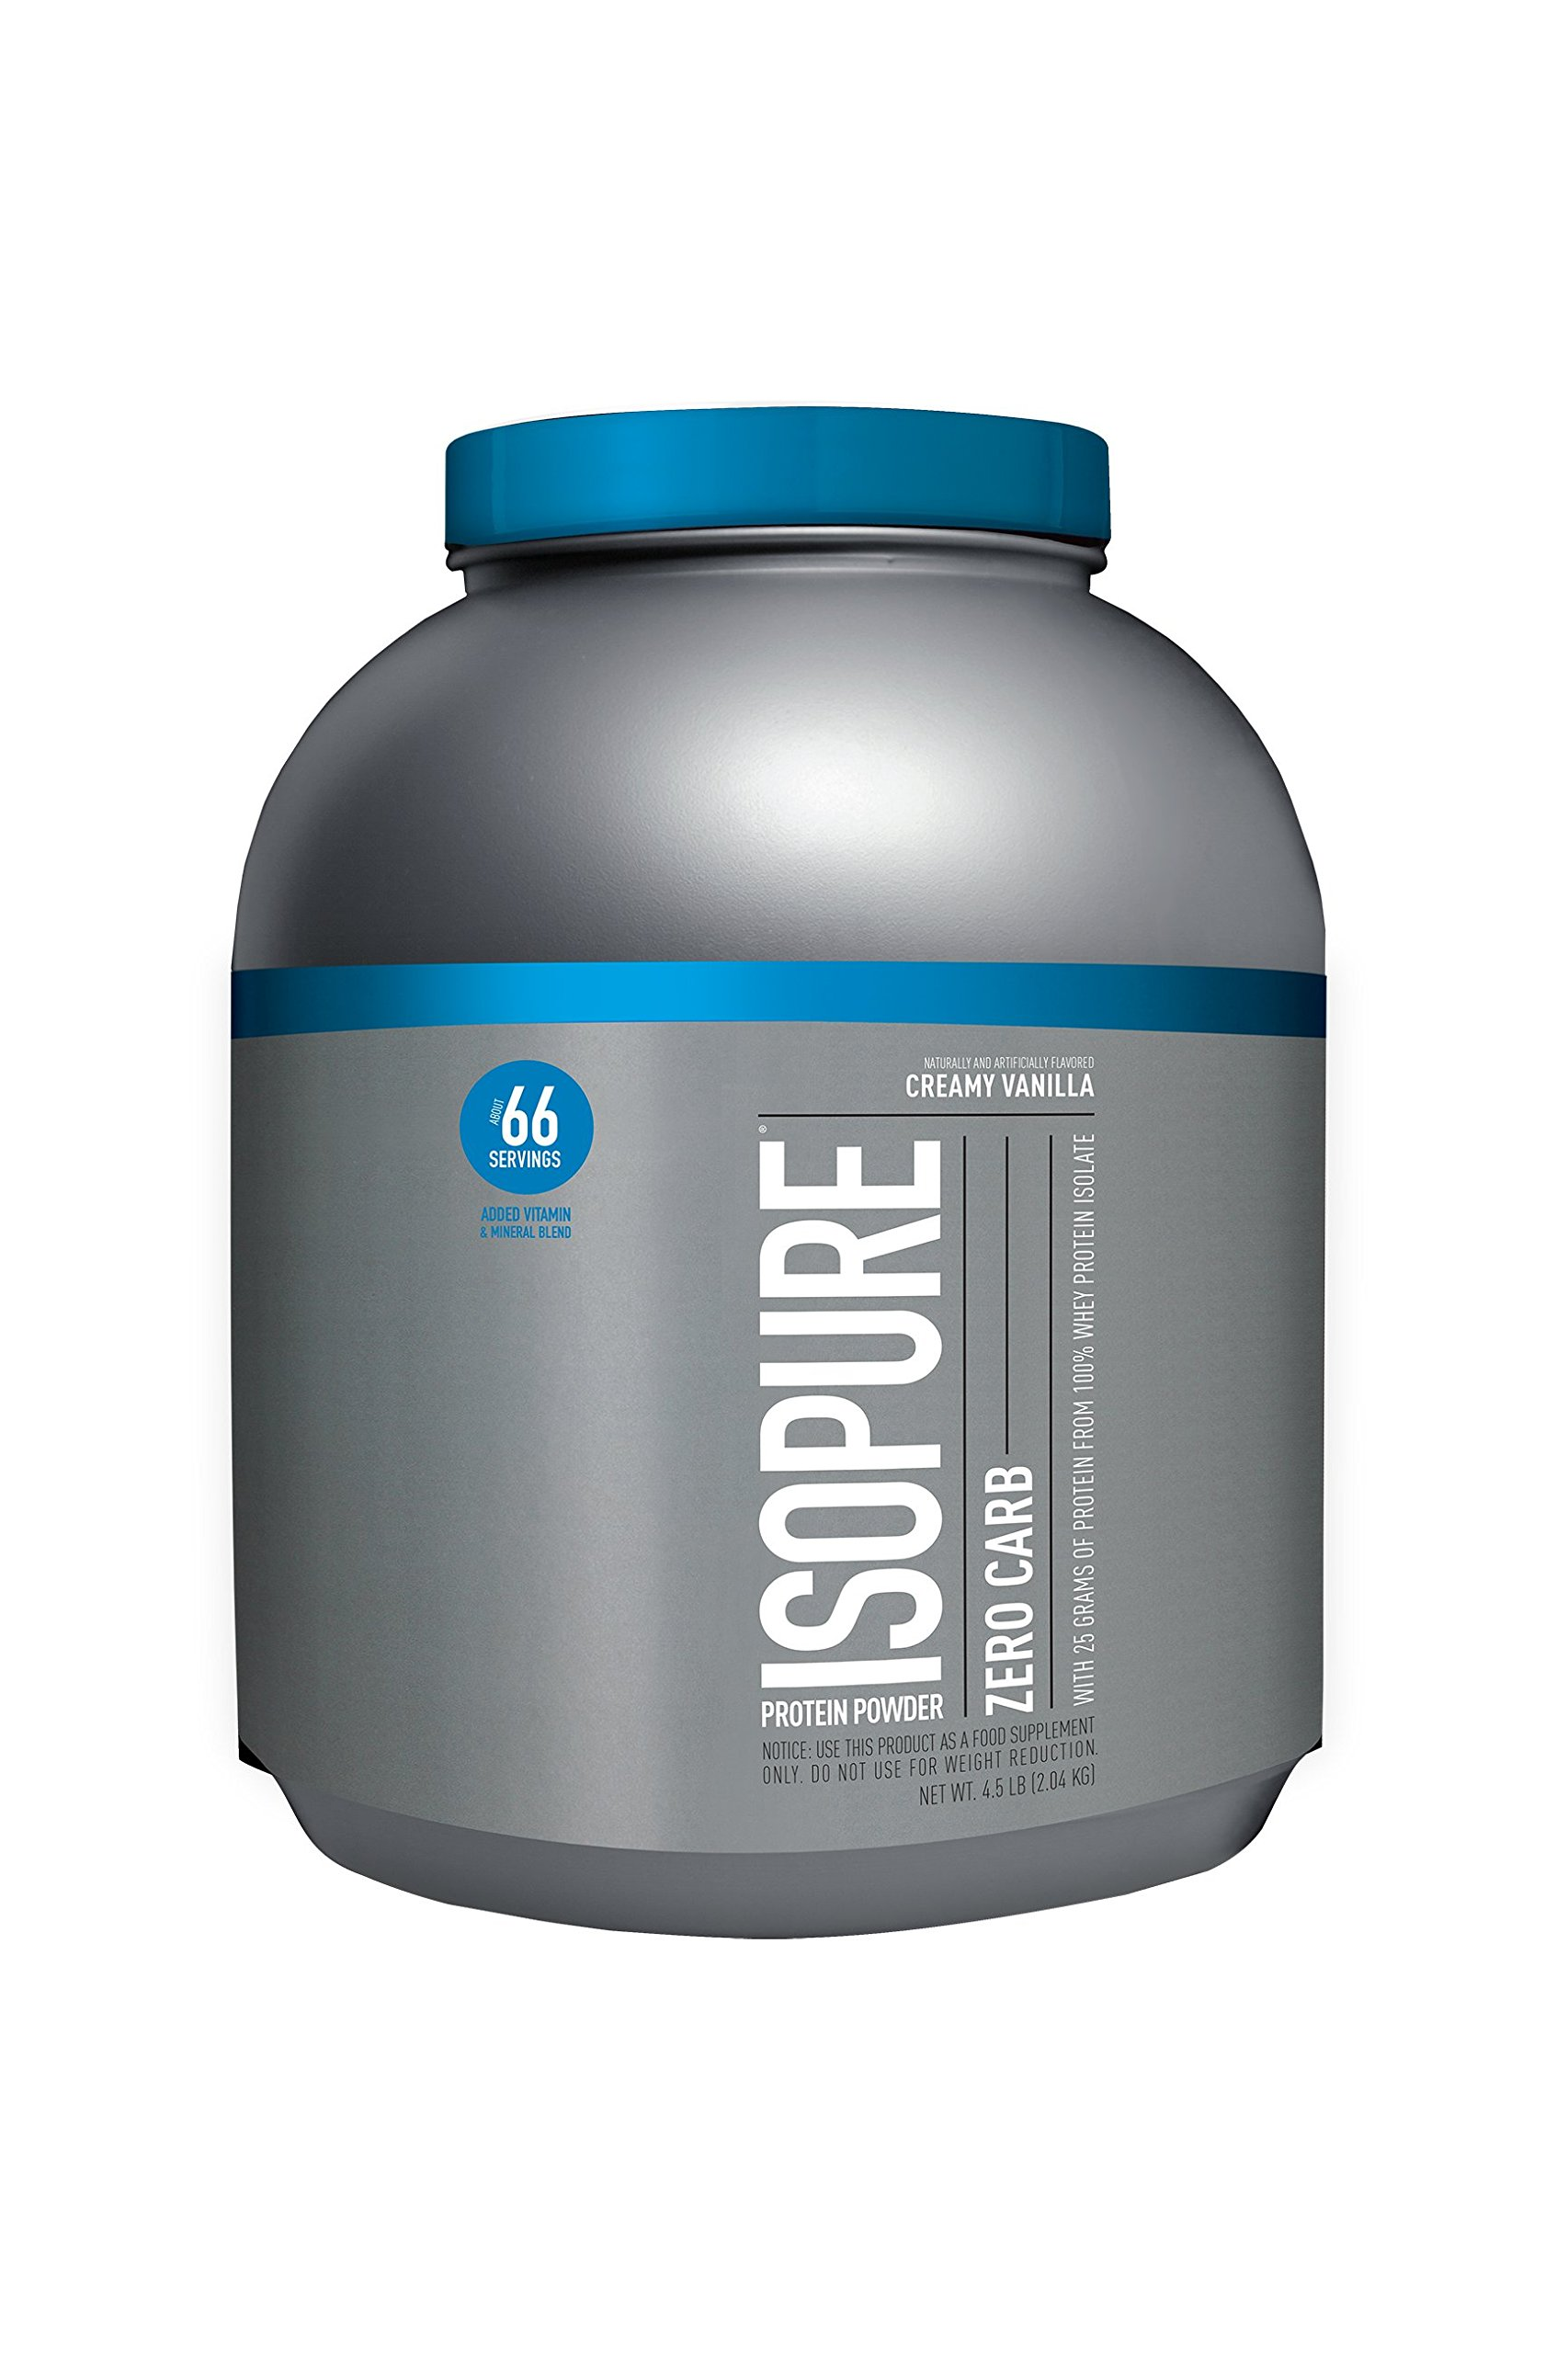 Isopure Zero Carb Protein Powder, 100% Whey Protein Isolate, Flavor: Creamy Vanilla, 4.5 Pounds (Packaging May Vary)